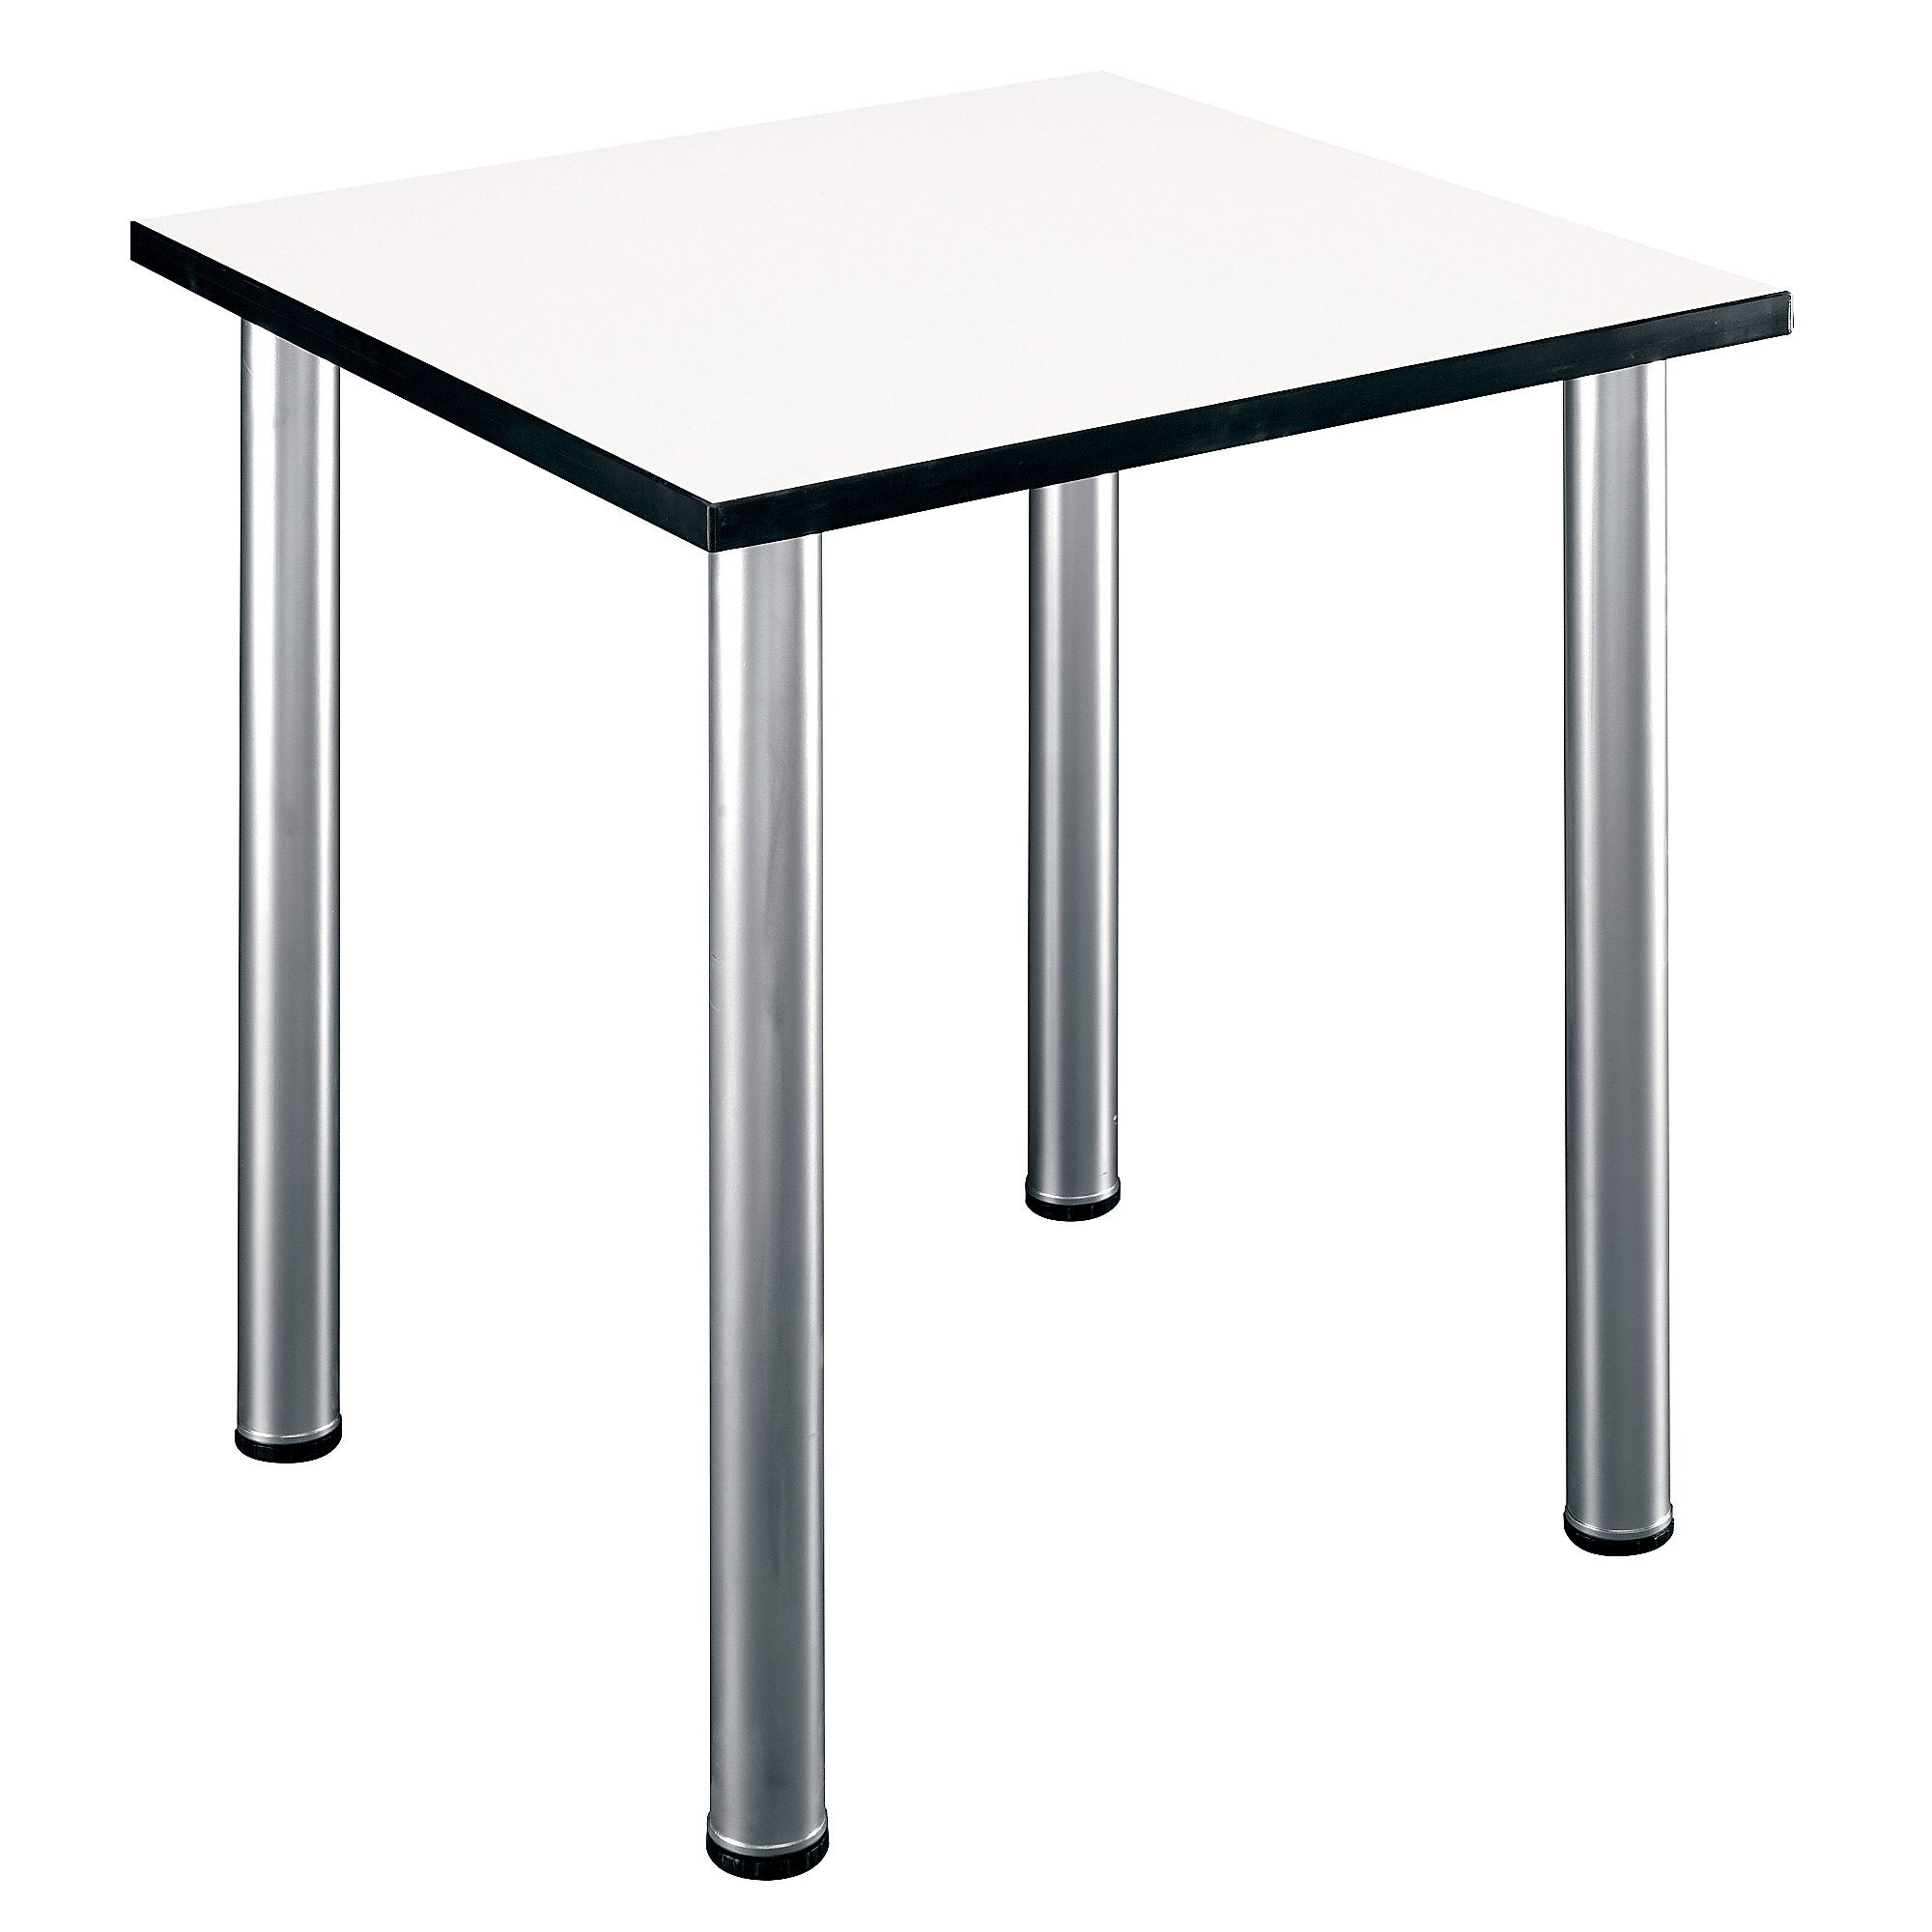 Bush Business Furniture Aspen Tables 28-1/2W Square Table in White Spectrum by Bush Business Furniture